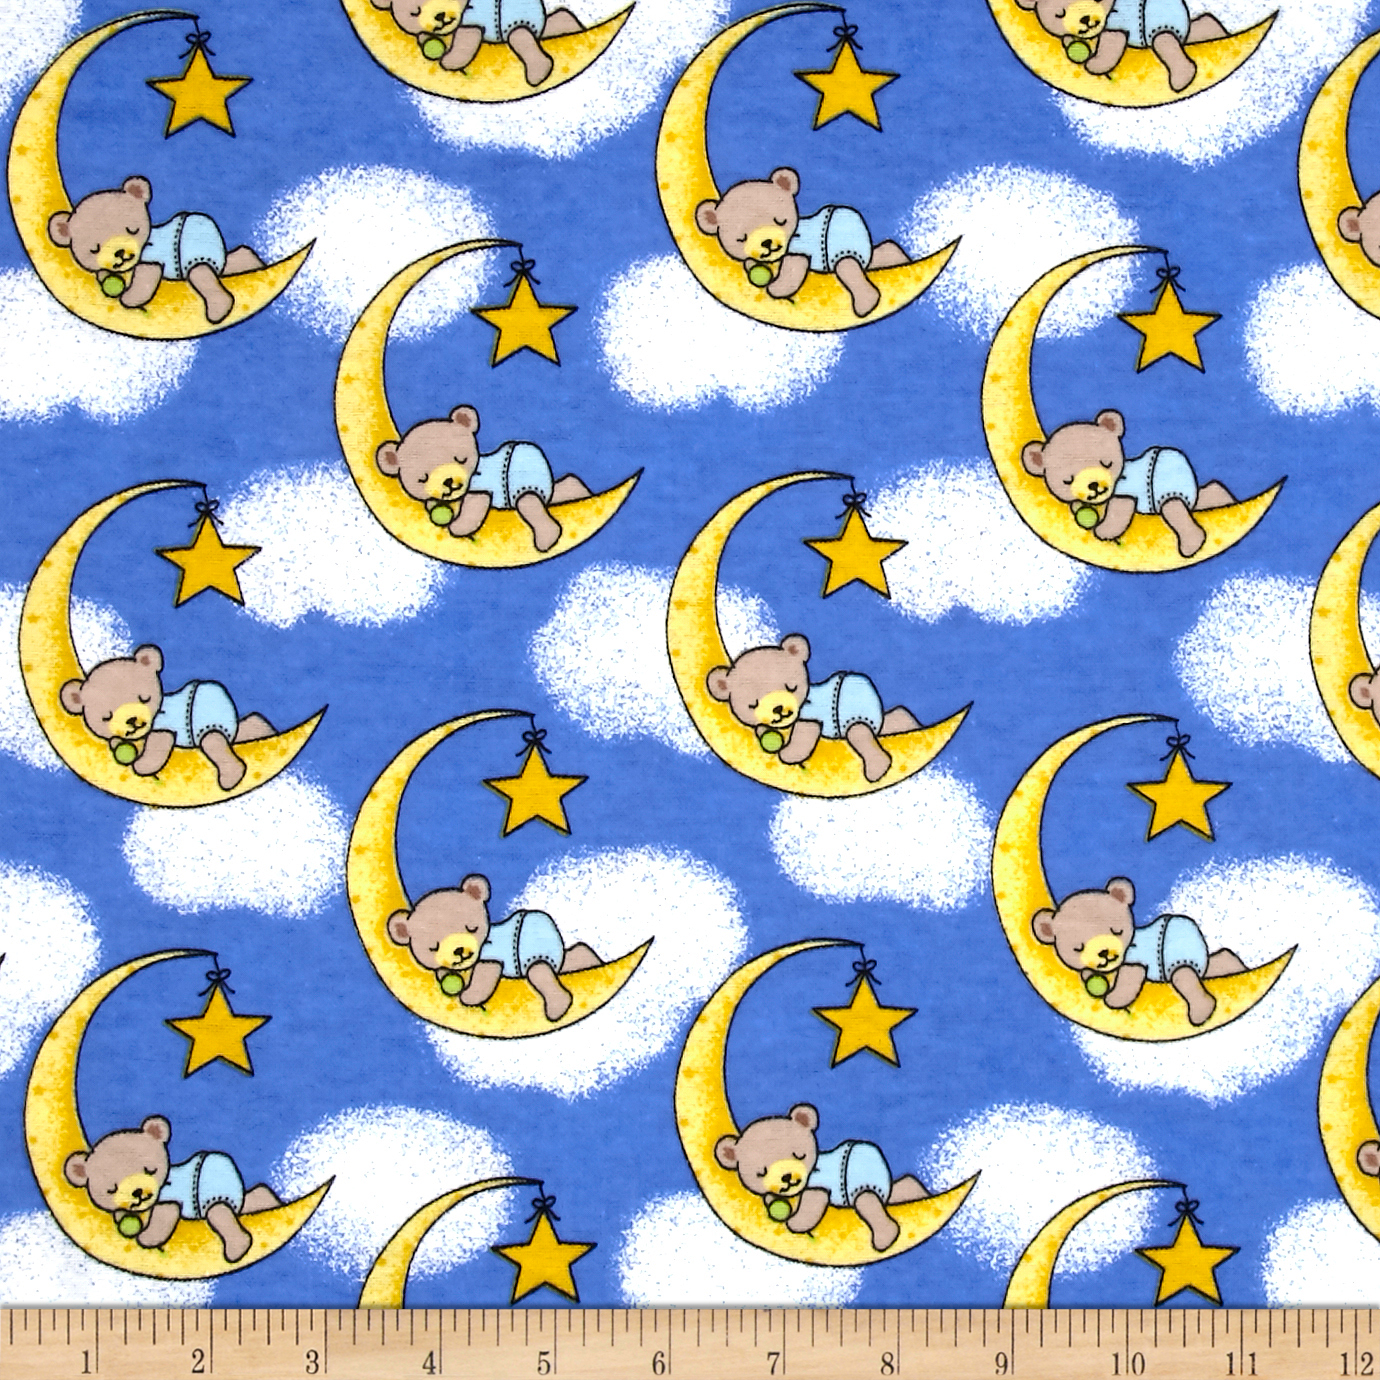 Flannel Dreamy Bear Royal Fabric by Newcastle in USA